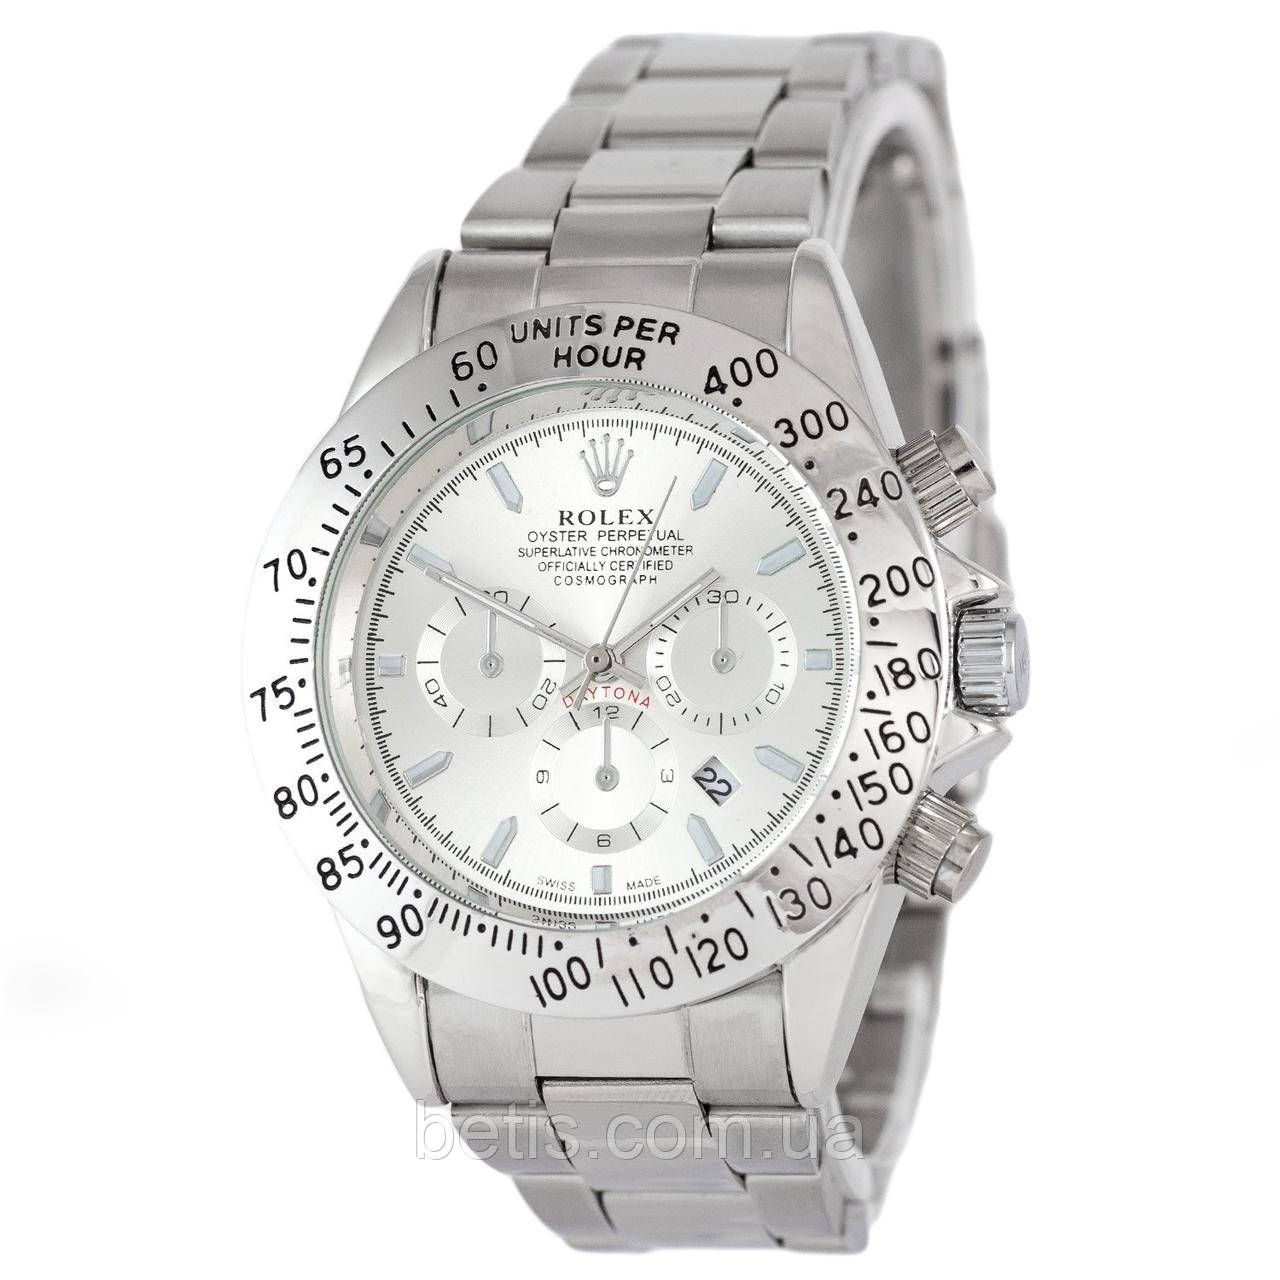 Rolex Daytona Quartz Date All Silver